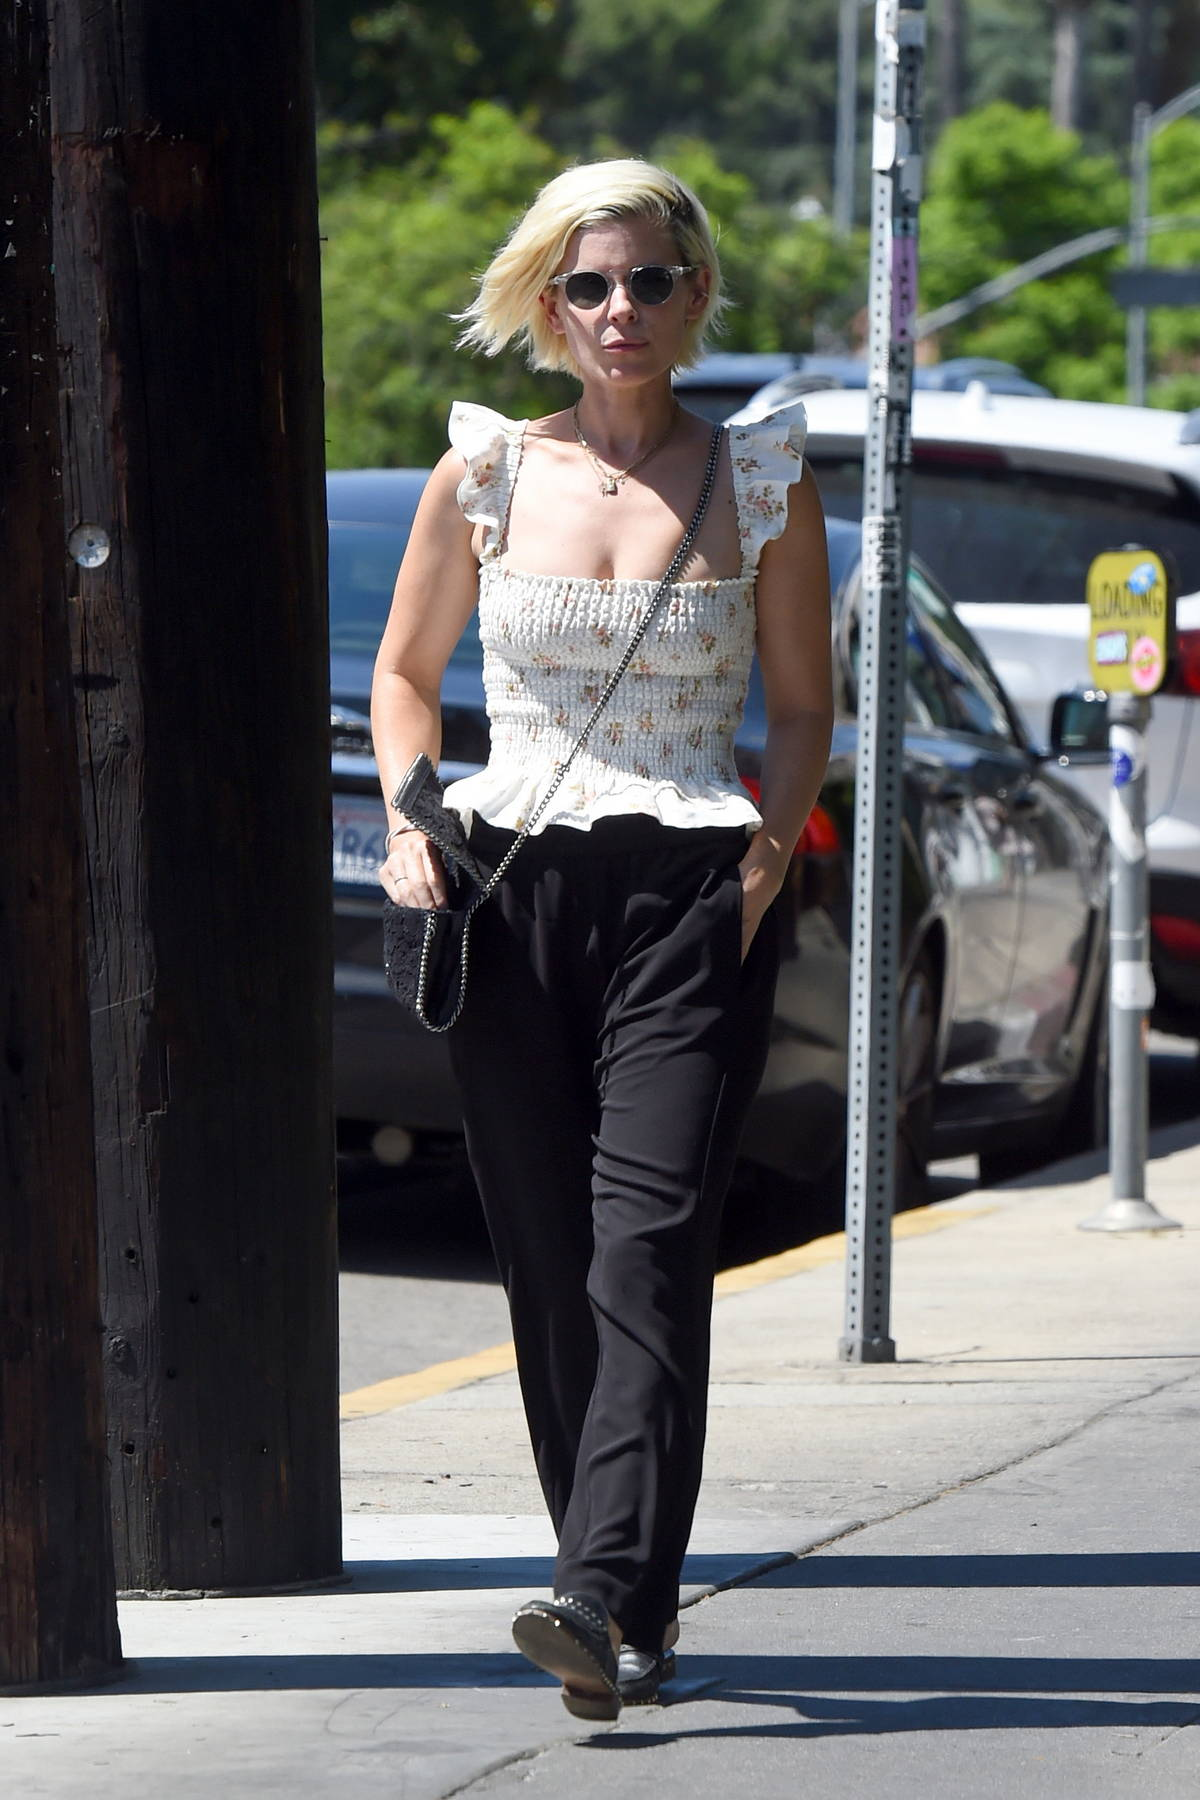 Kate Mara wears a frilly floral top and black trousers as she steps out in Los Angeles